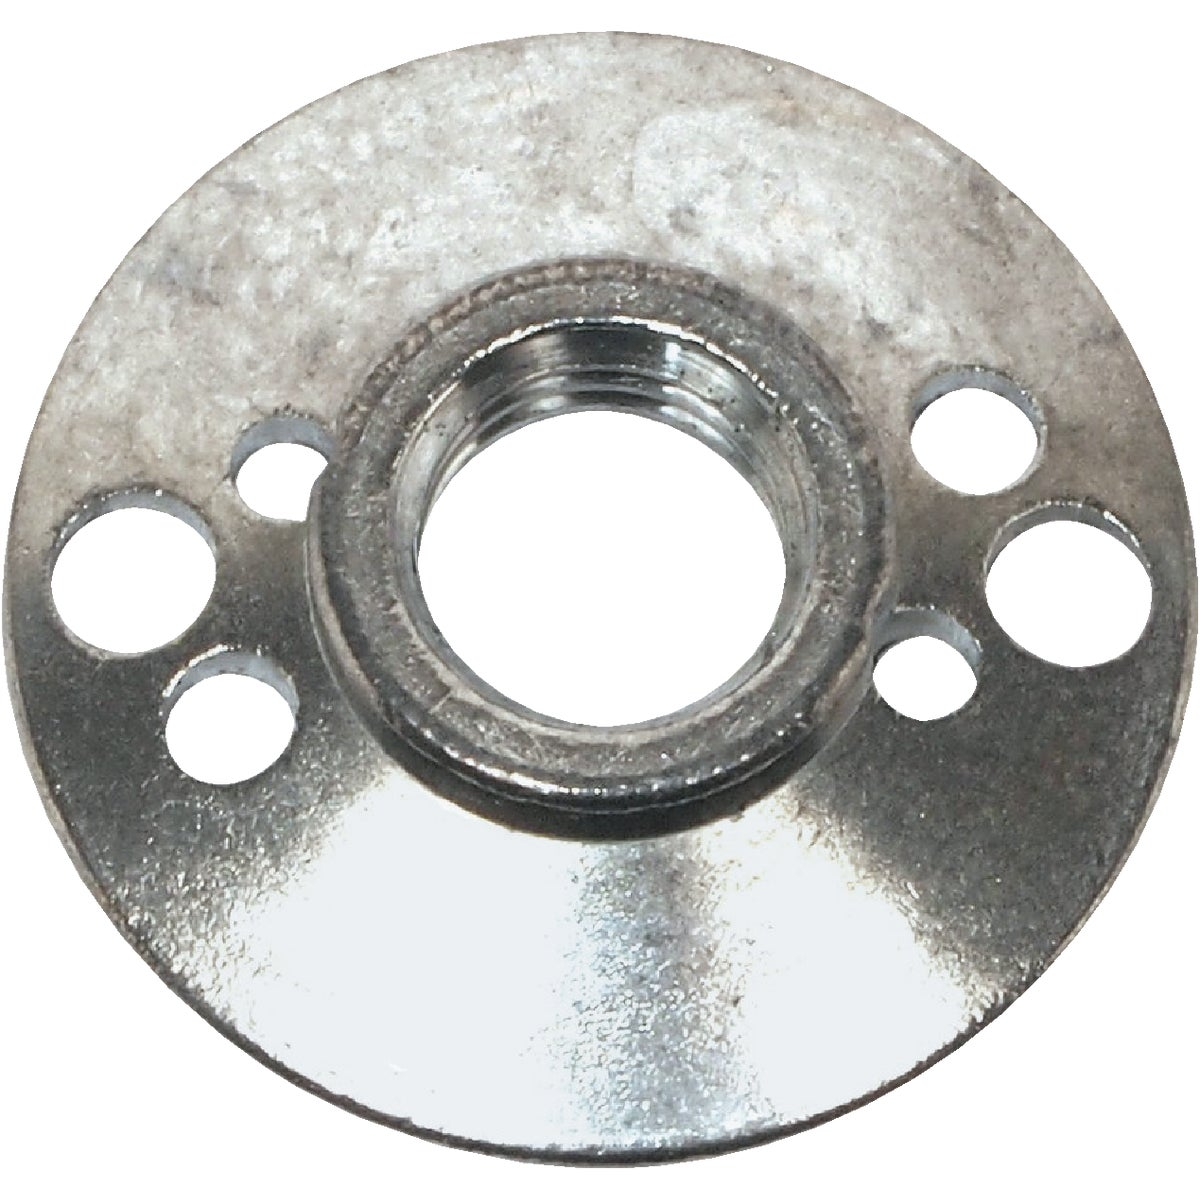 5/8-11 SPINDLE NUT